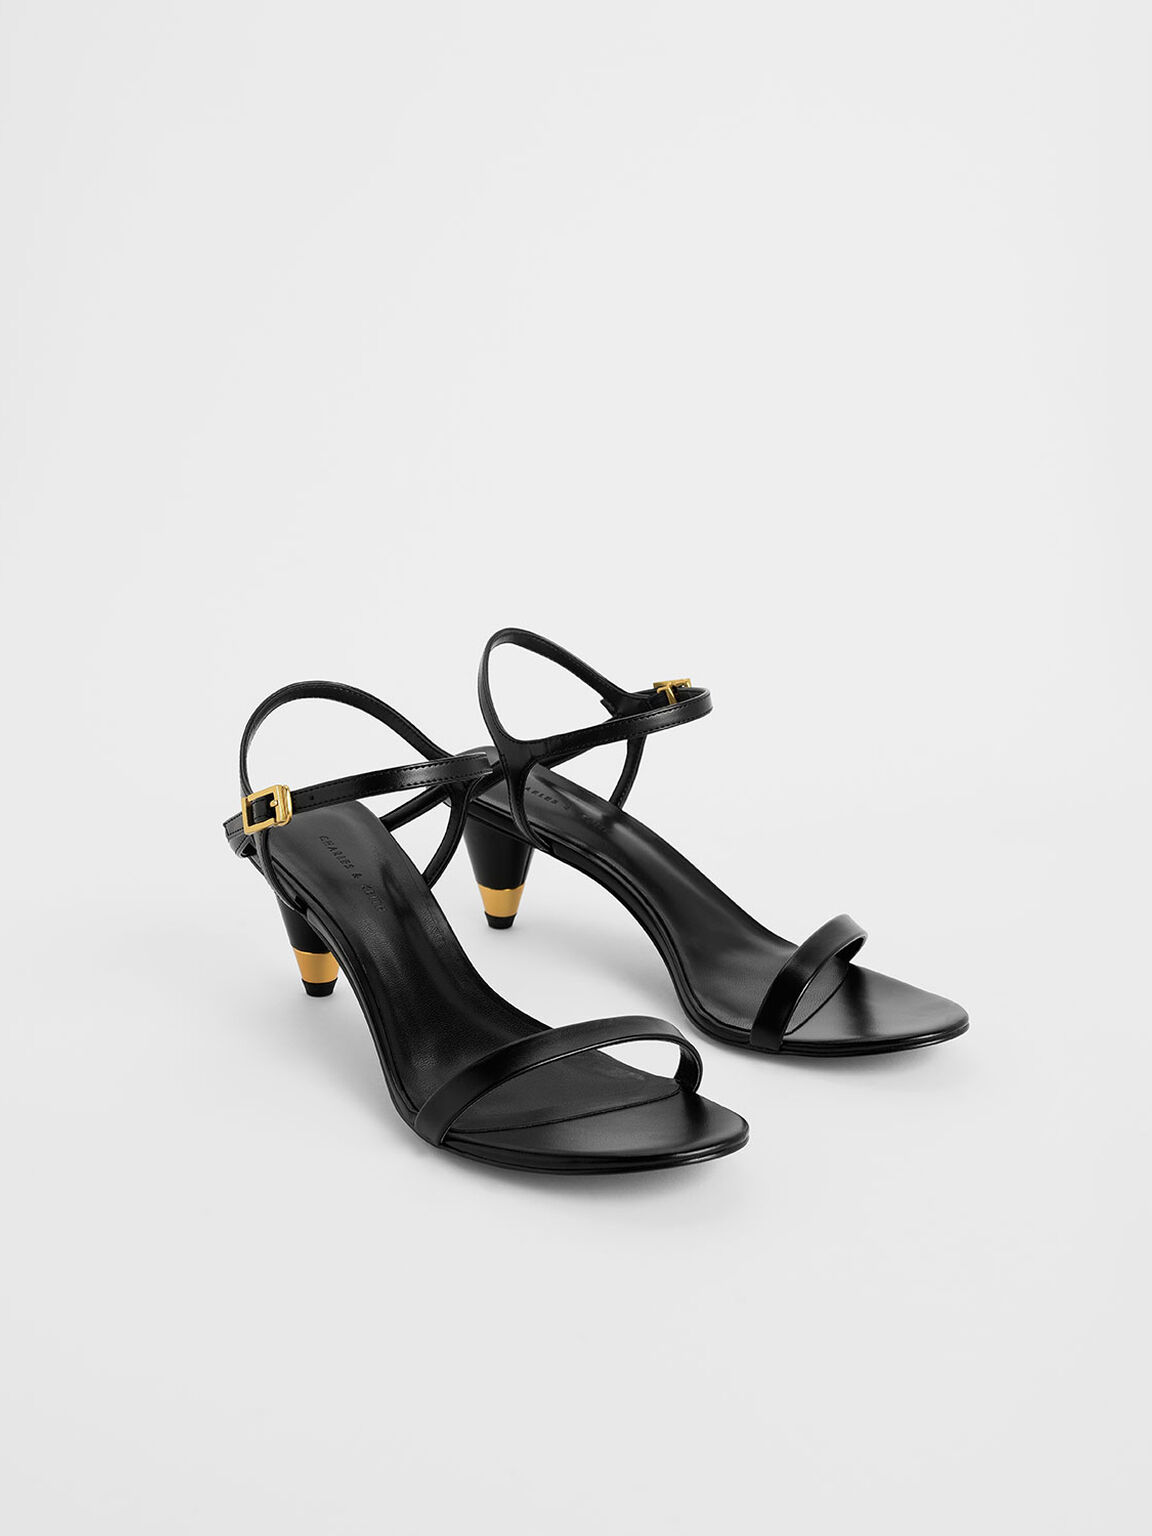 Gold Accent Cone Heel Sandals, Black, hi-res